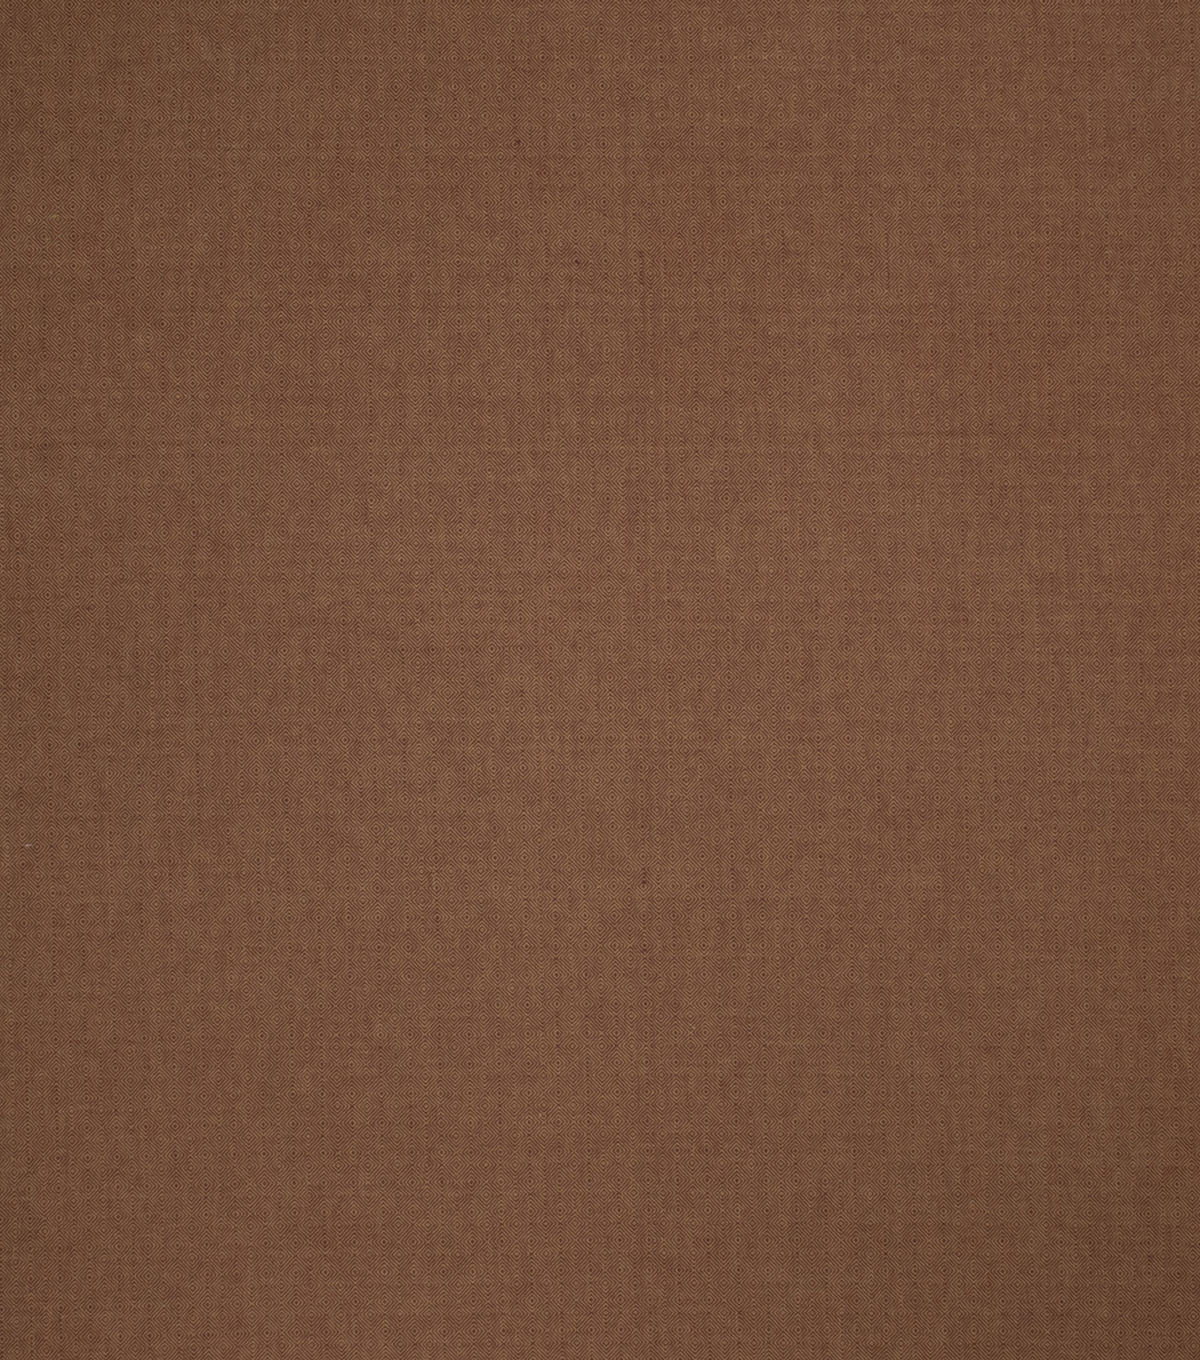 "Eaton Square Upholstery Fabric 54""-Seville/Cabernet"